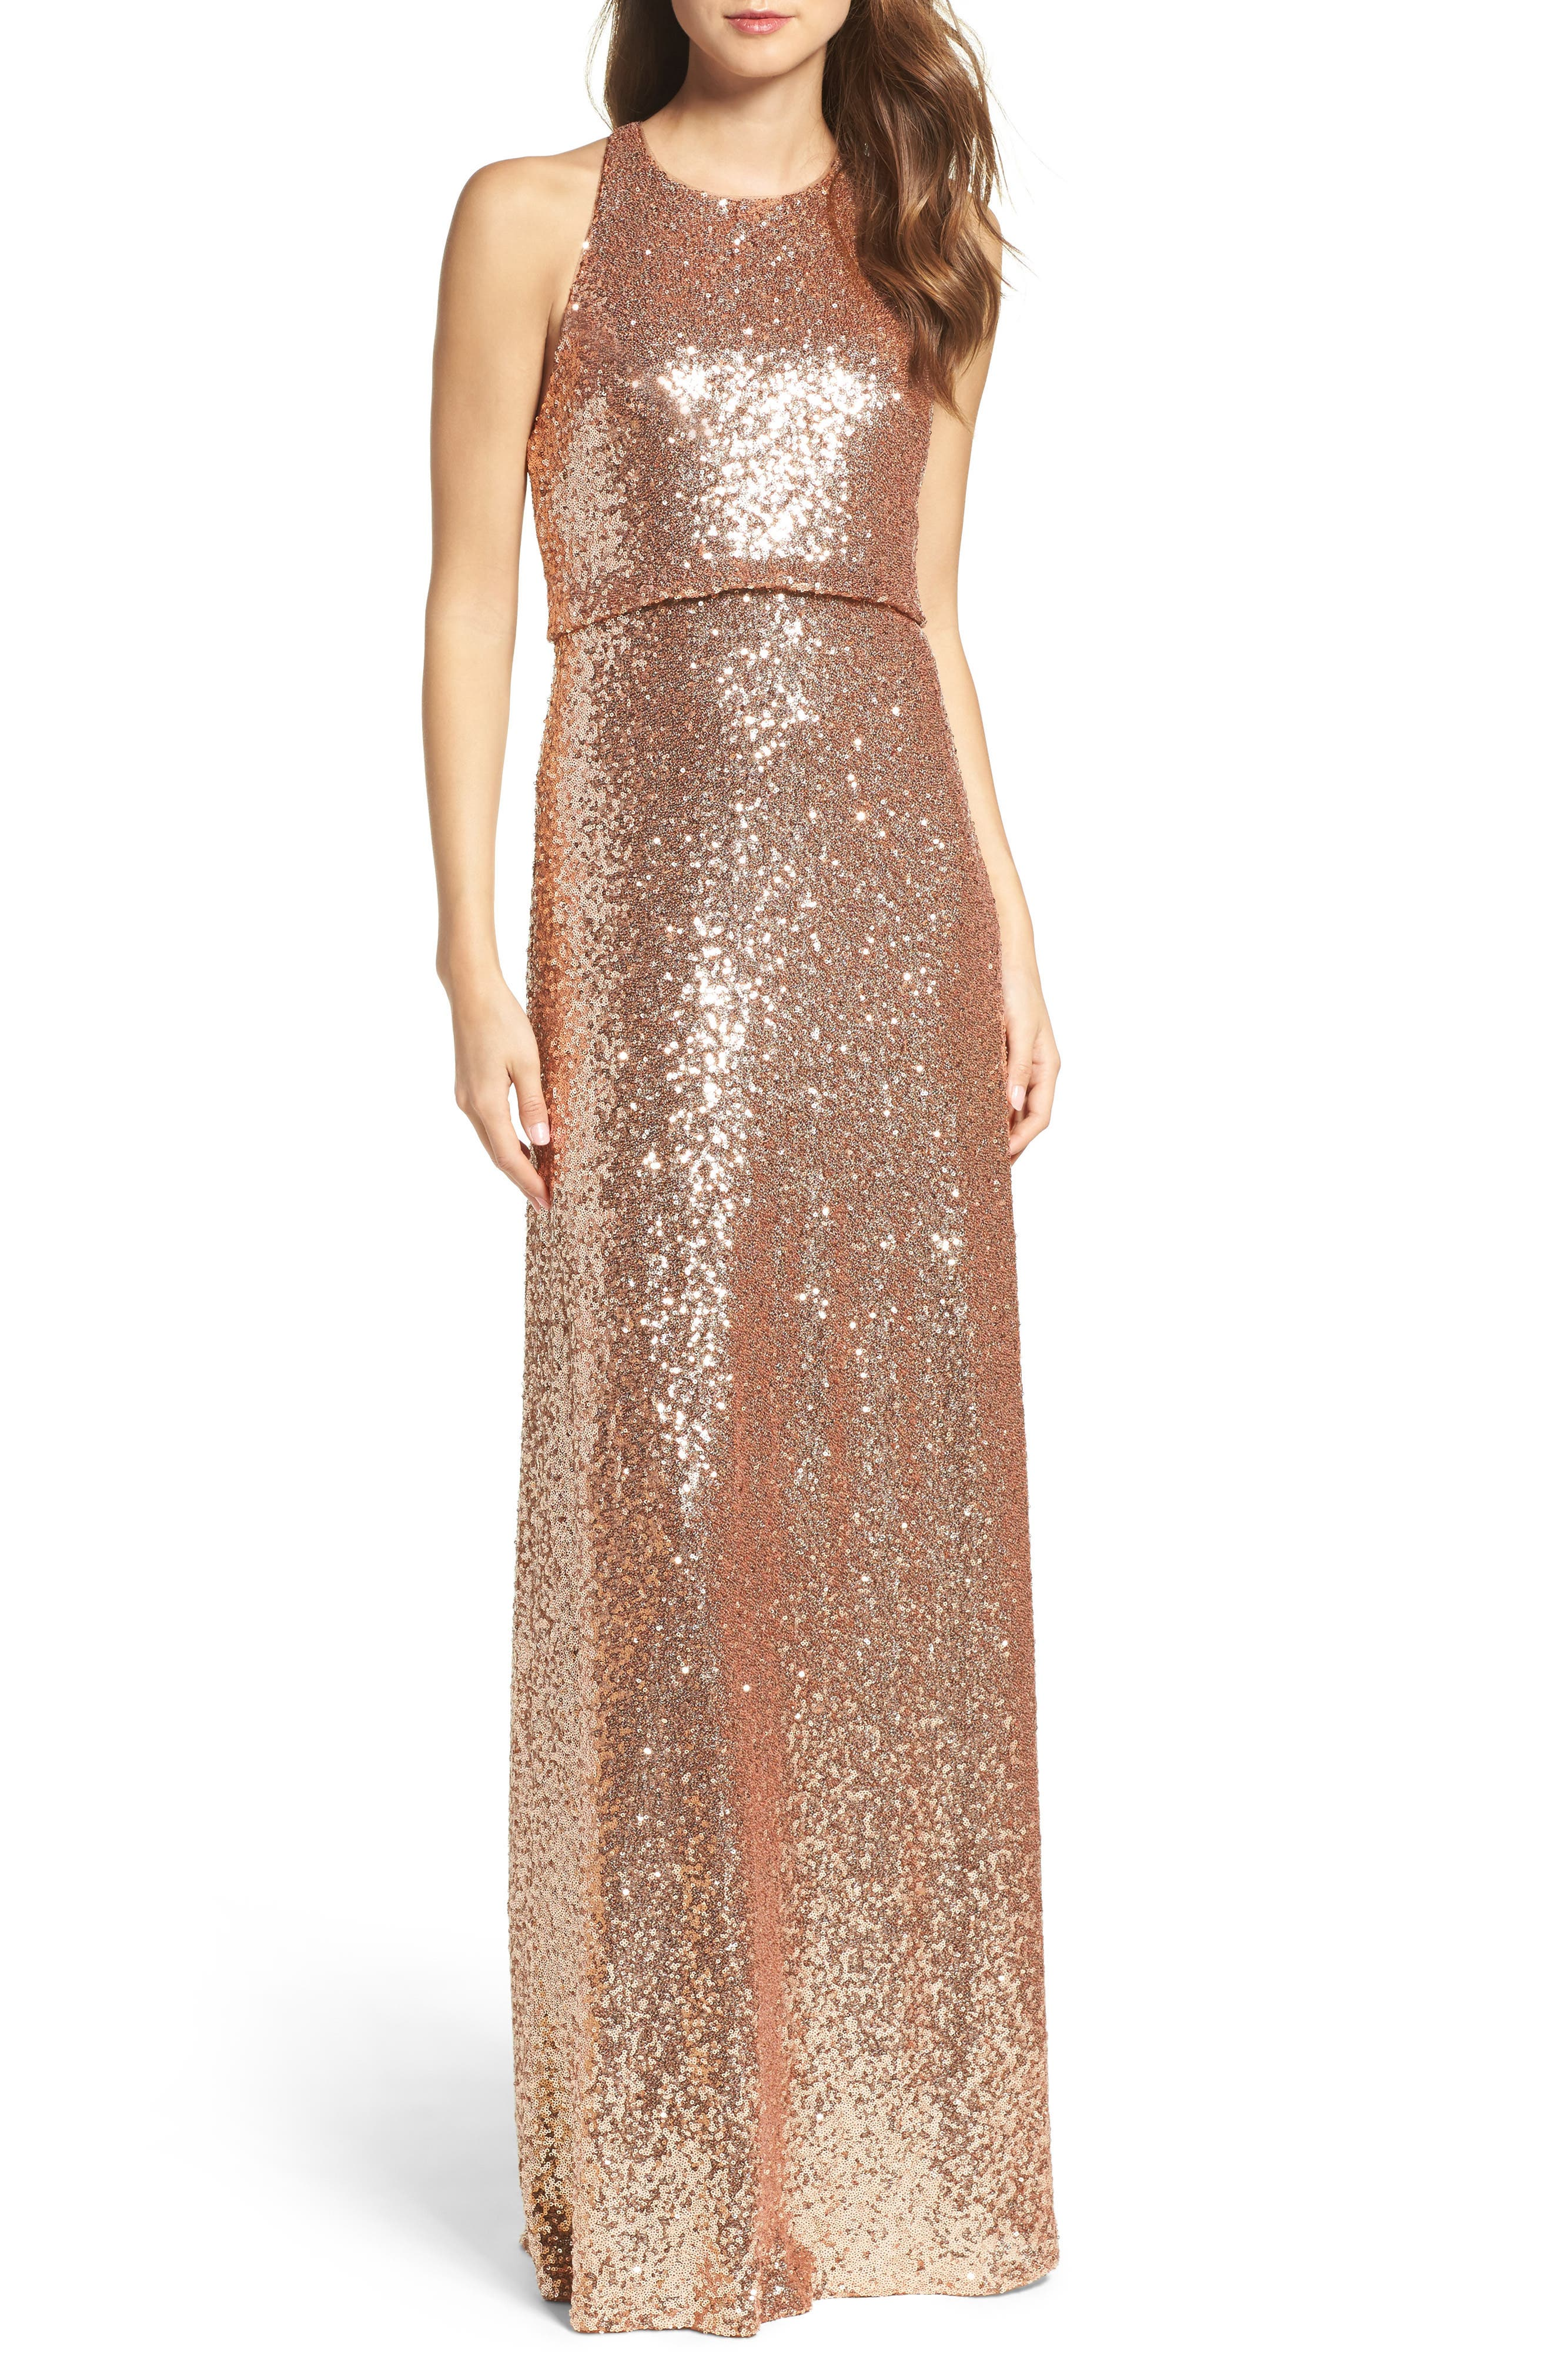 Sloane Sequin Halter Gown,                             Main thumbnail 1, color,                             Rose Gold